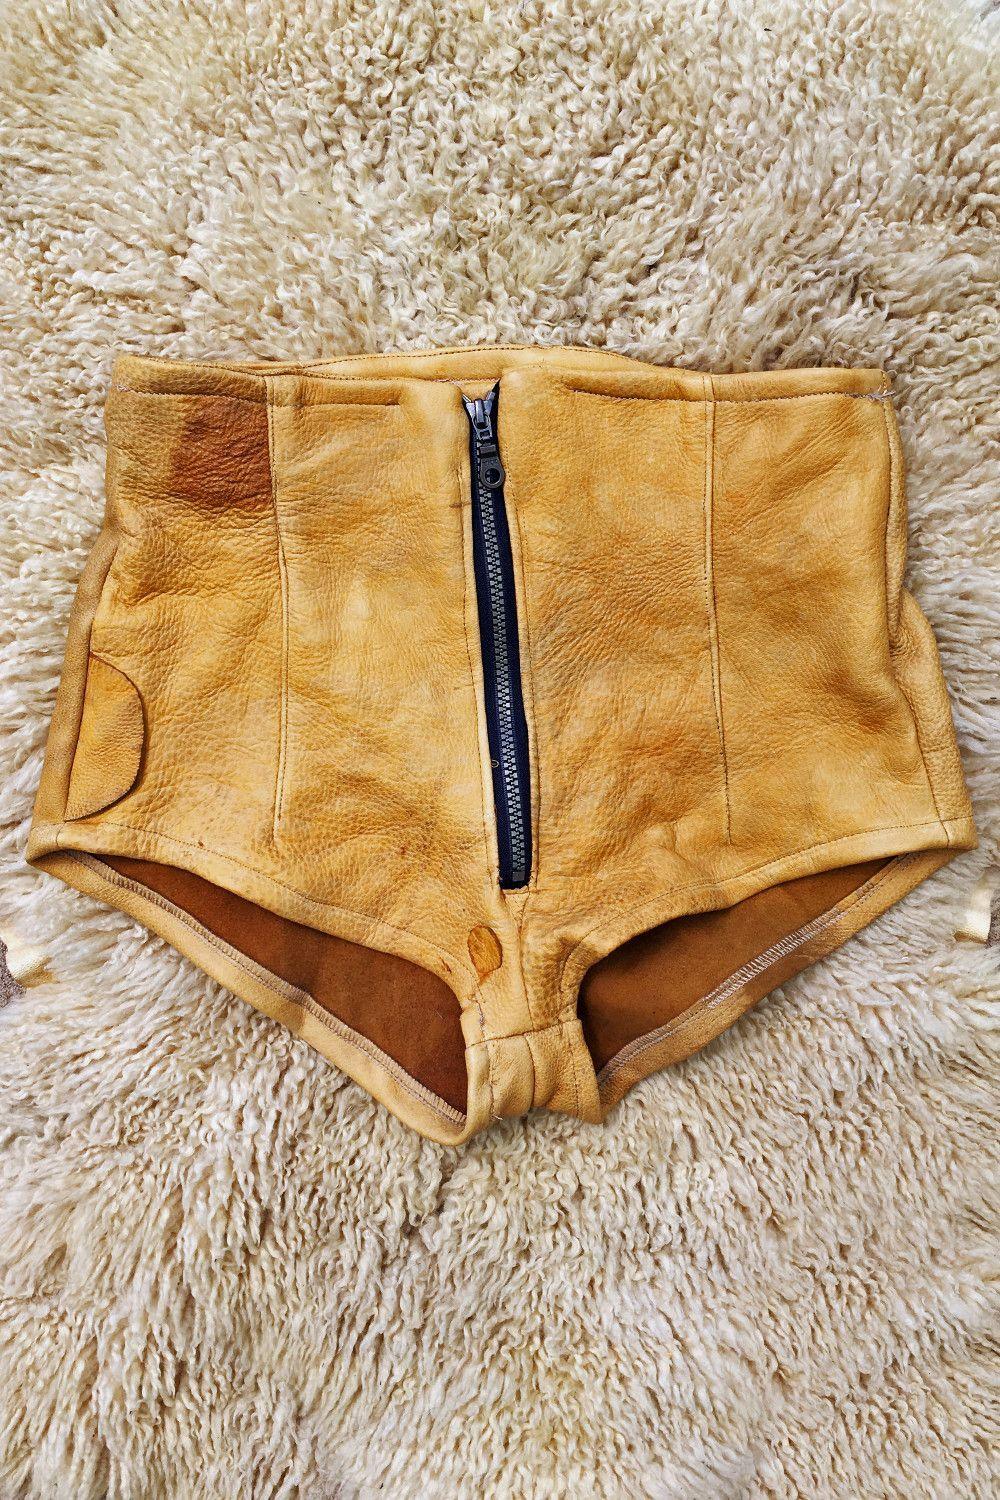 Lonesome Traveler Recycled Leather One Of A Kind Hot Shorts